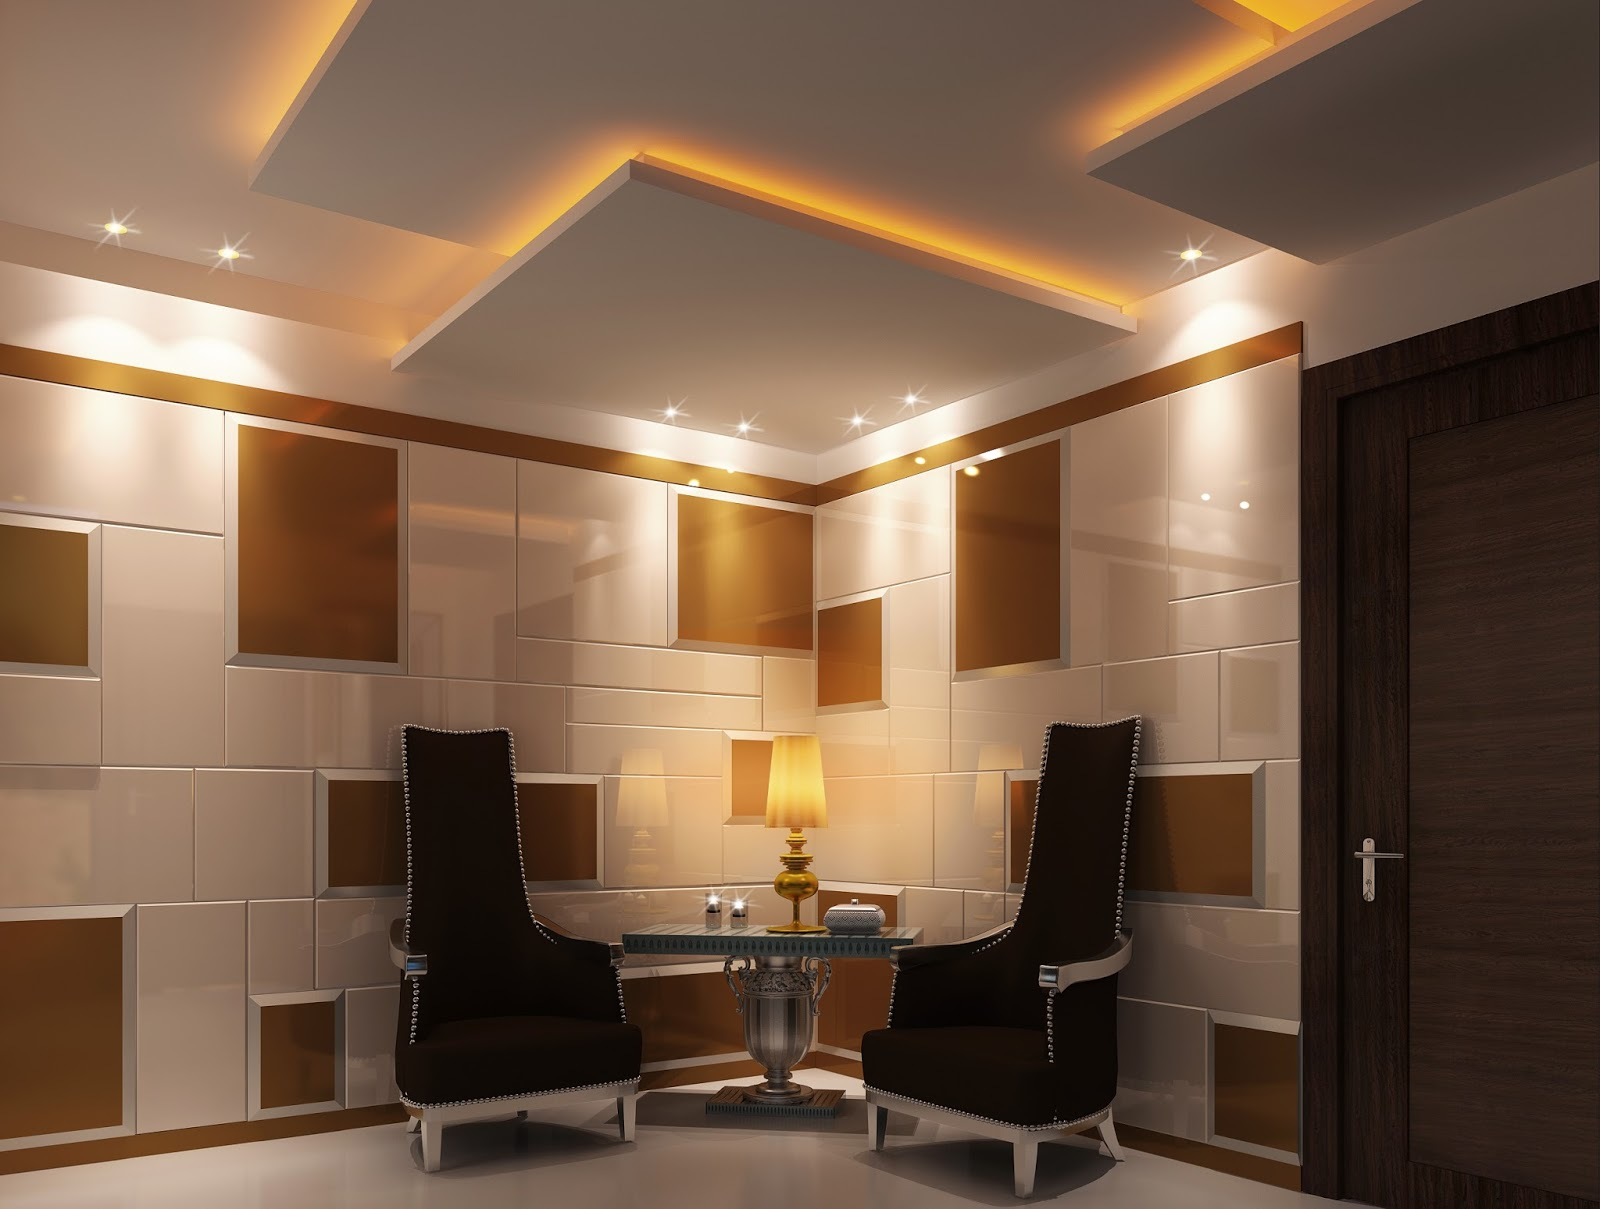 Design My Foyer : D visualization classical bedroom and entrance foyer design